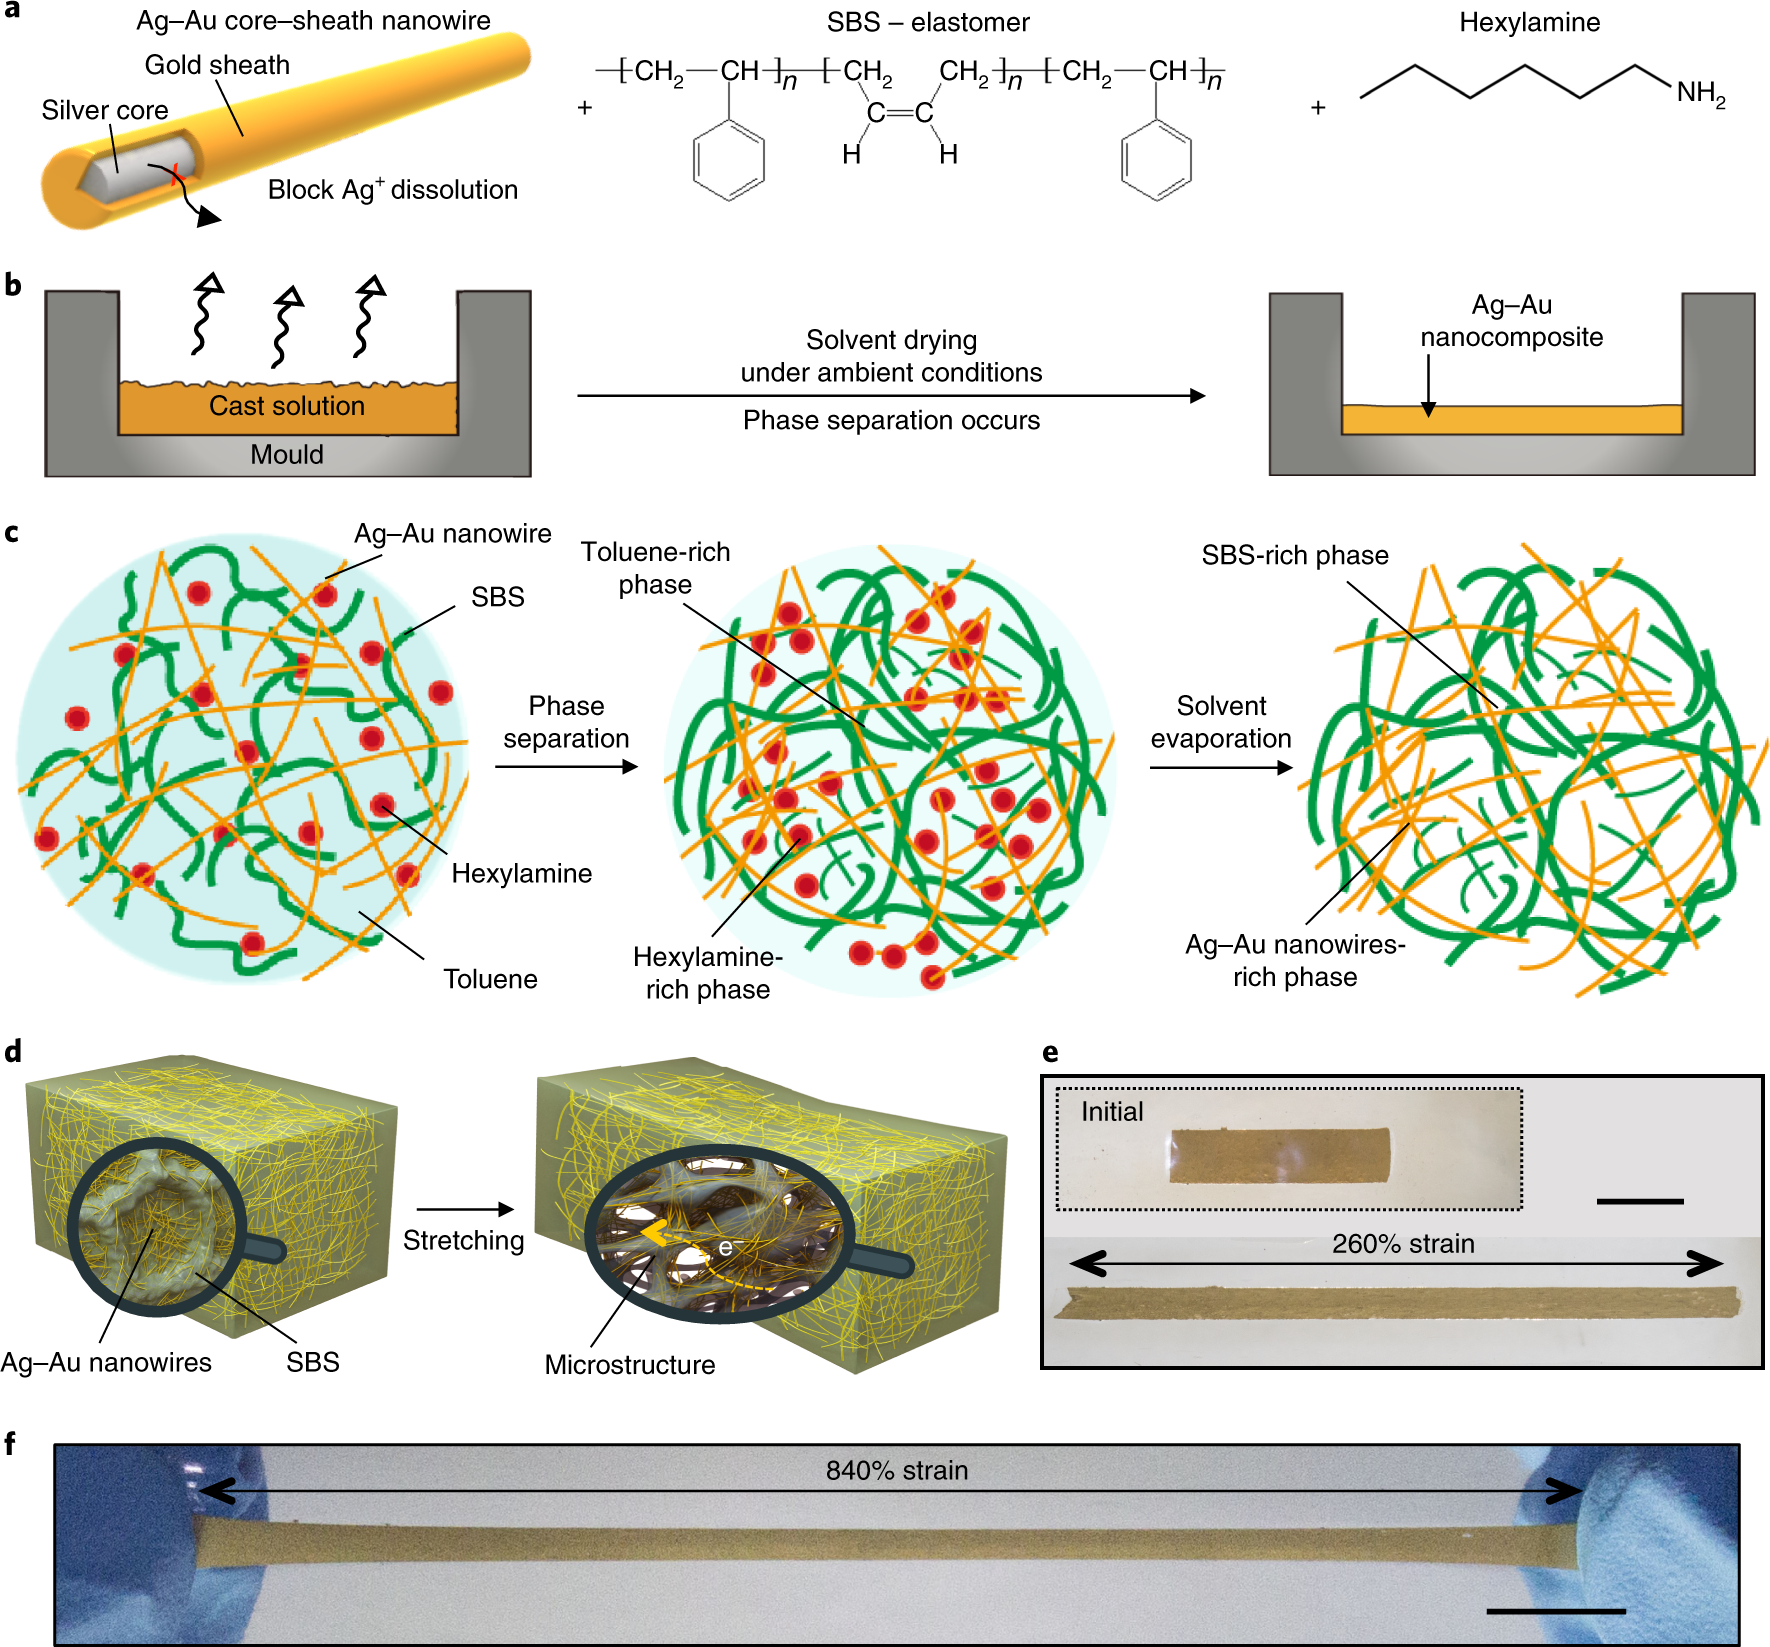 highly conductive, stretchable and biocompatible ag–au core–sheath nanowire  composite for wearable and implantable bioelectronics | nature  nanotechnology